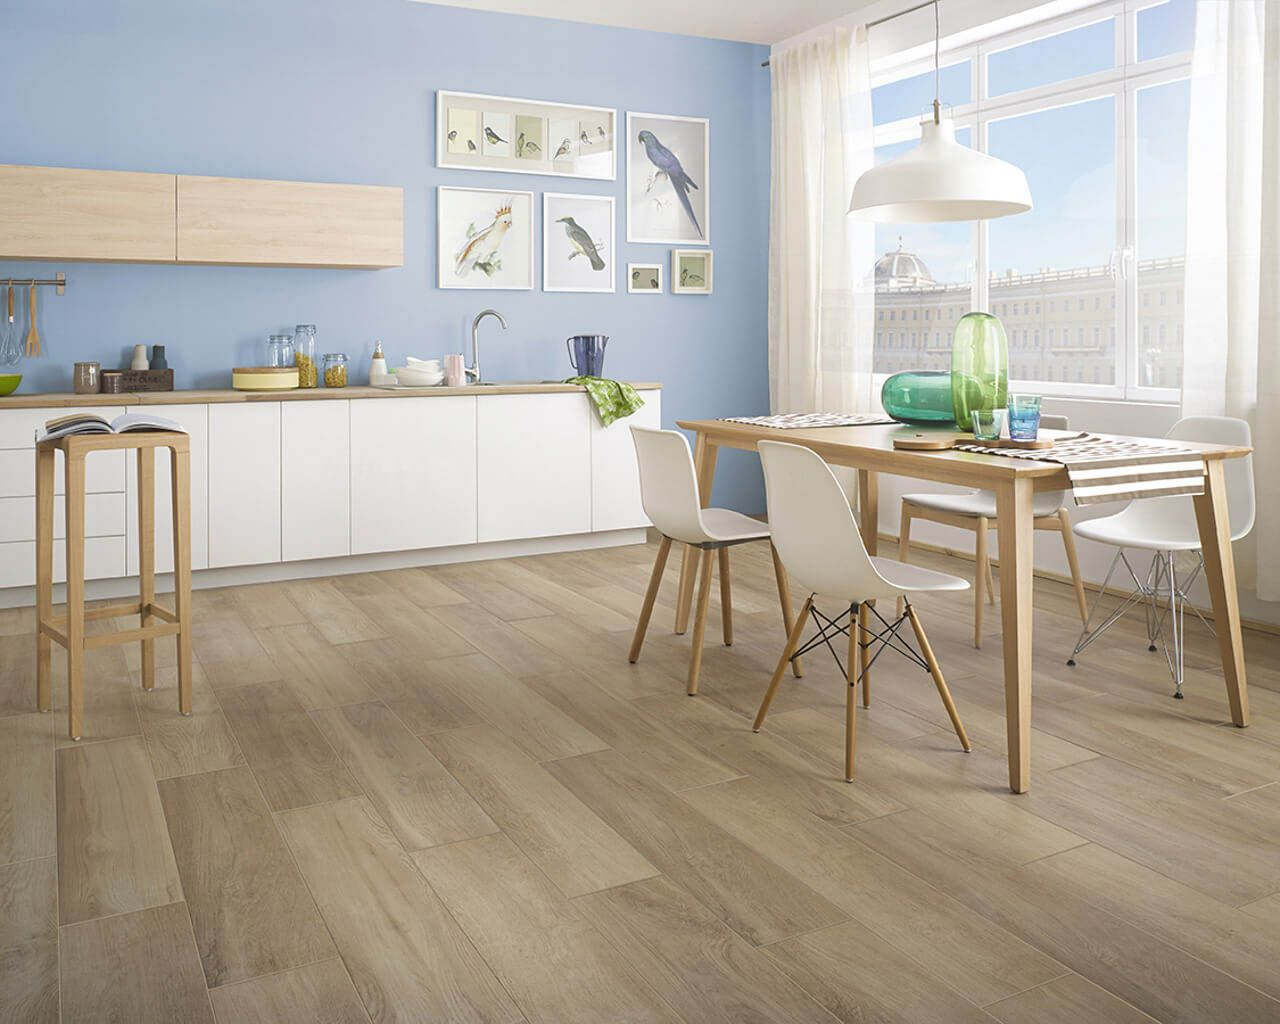 Bright Kitchen In A Scandinavian Style, With Ceramic Floorboards